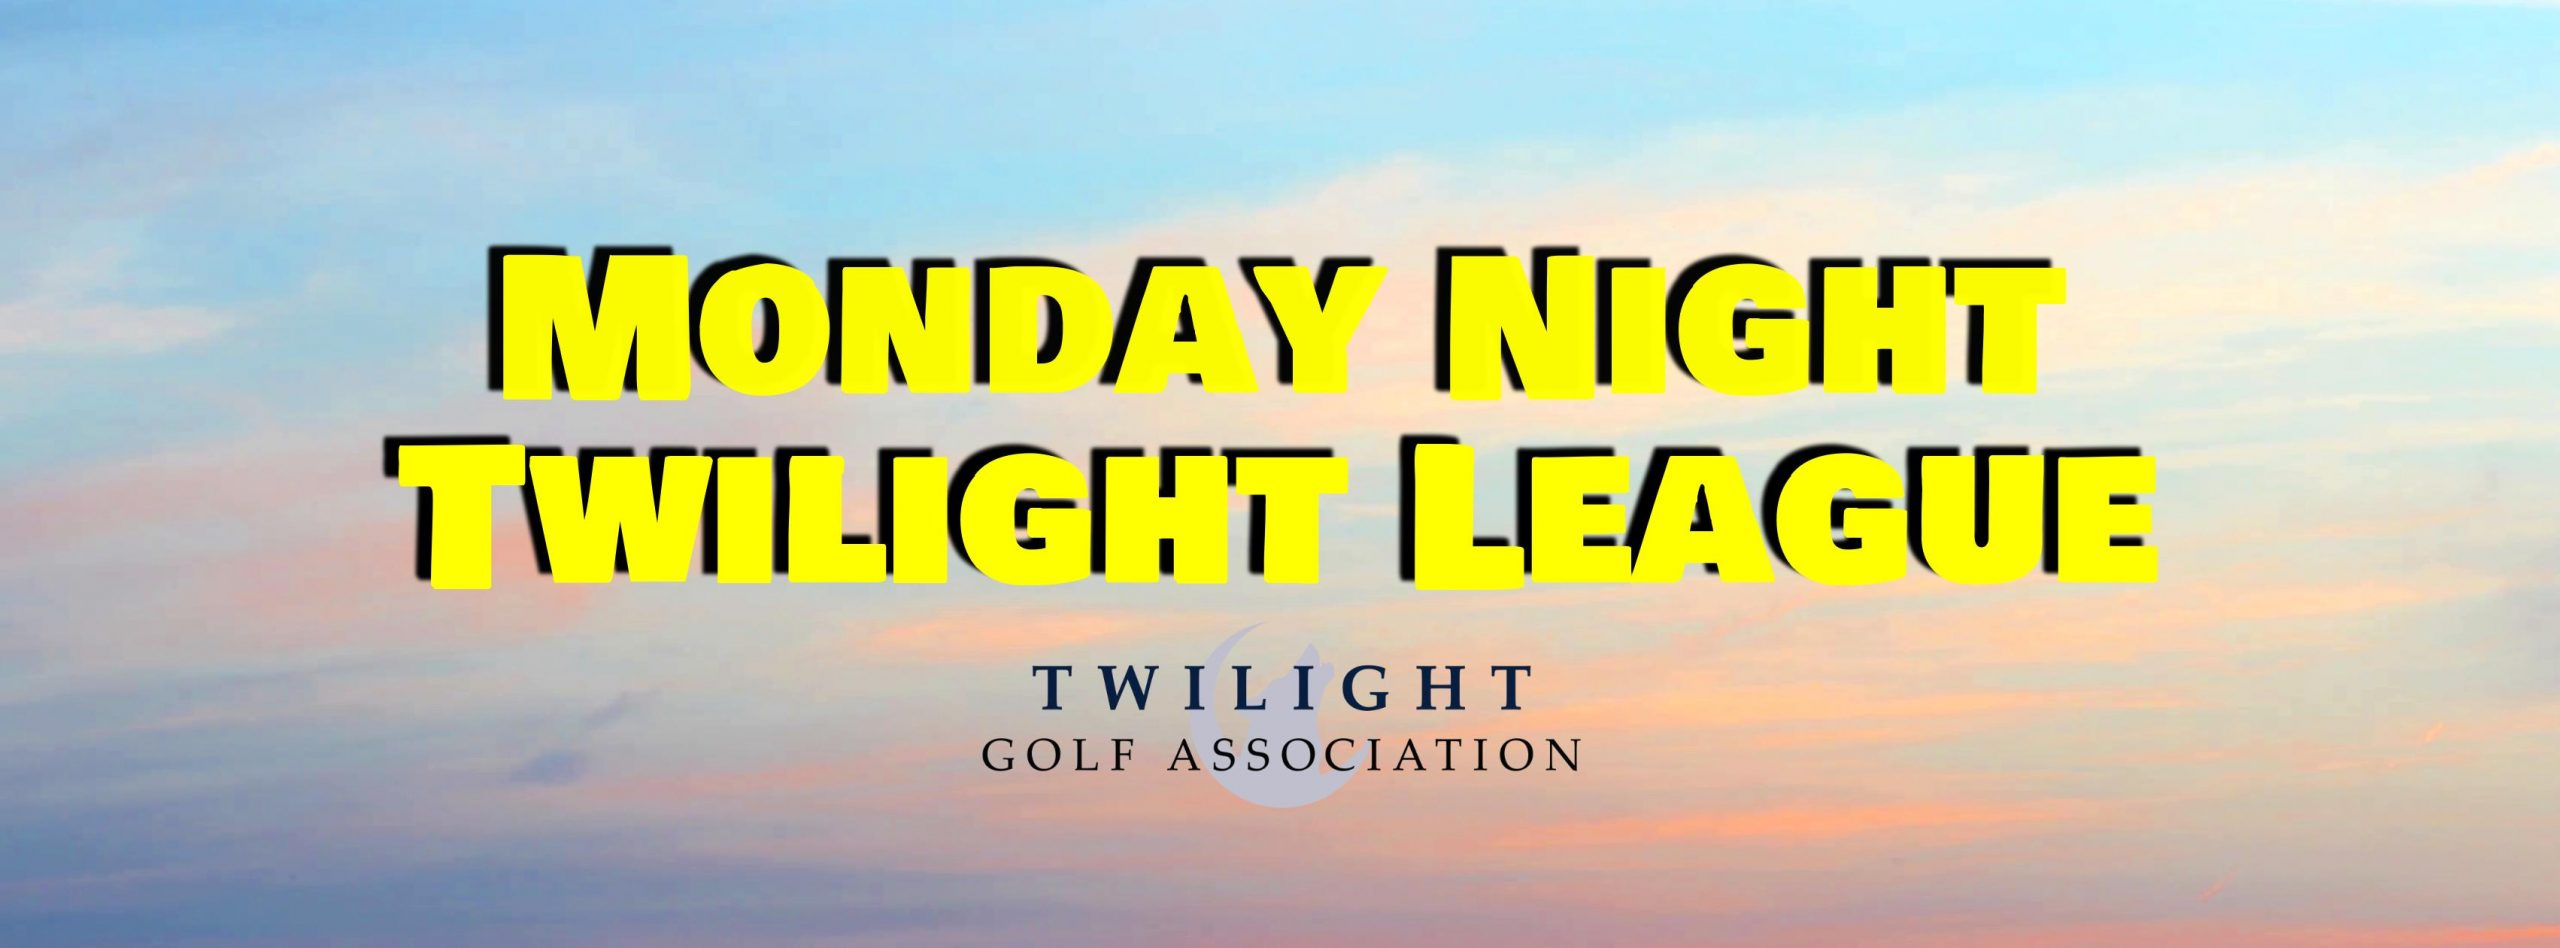 Monday Night Twilight League at Indian Spring Golf Course